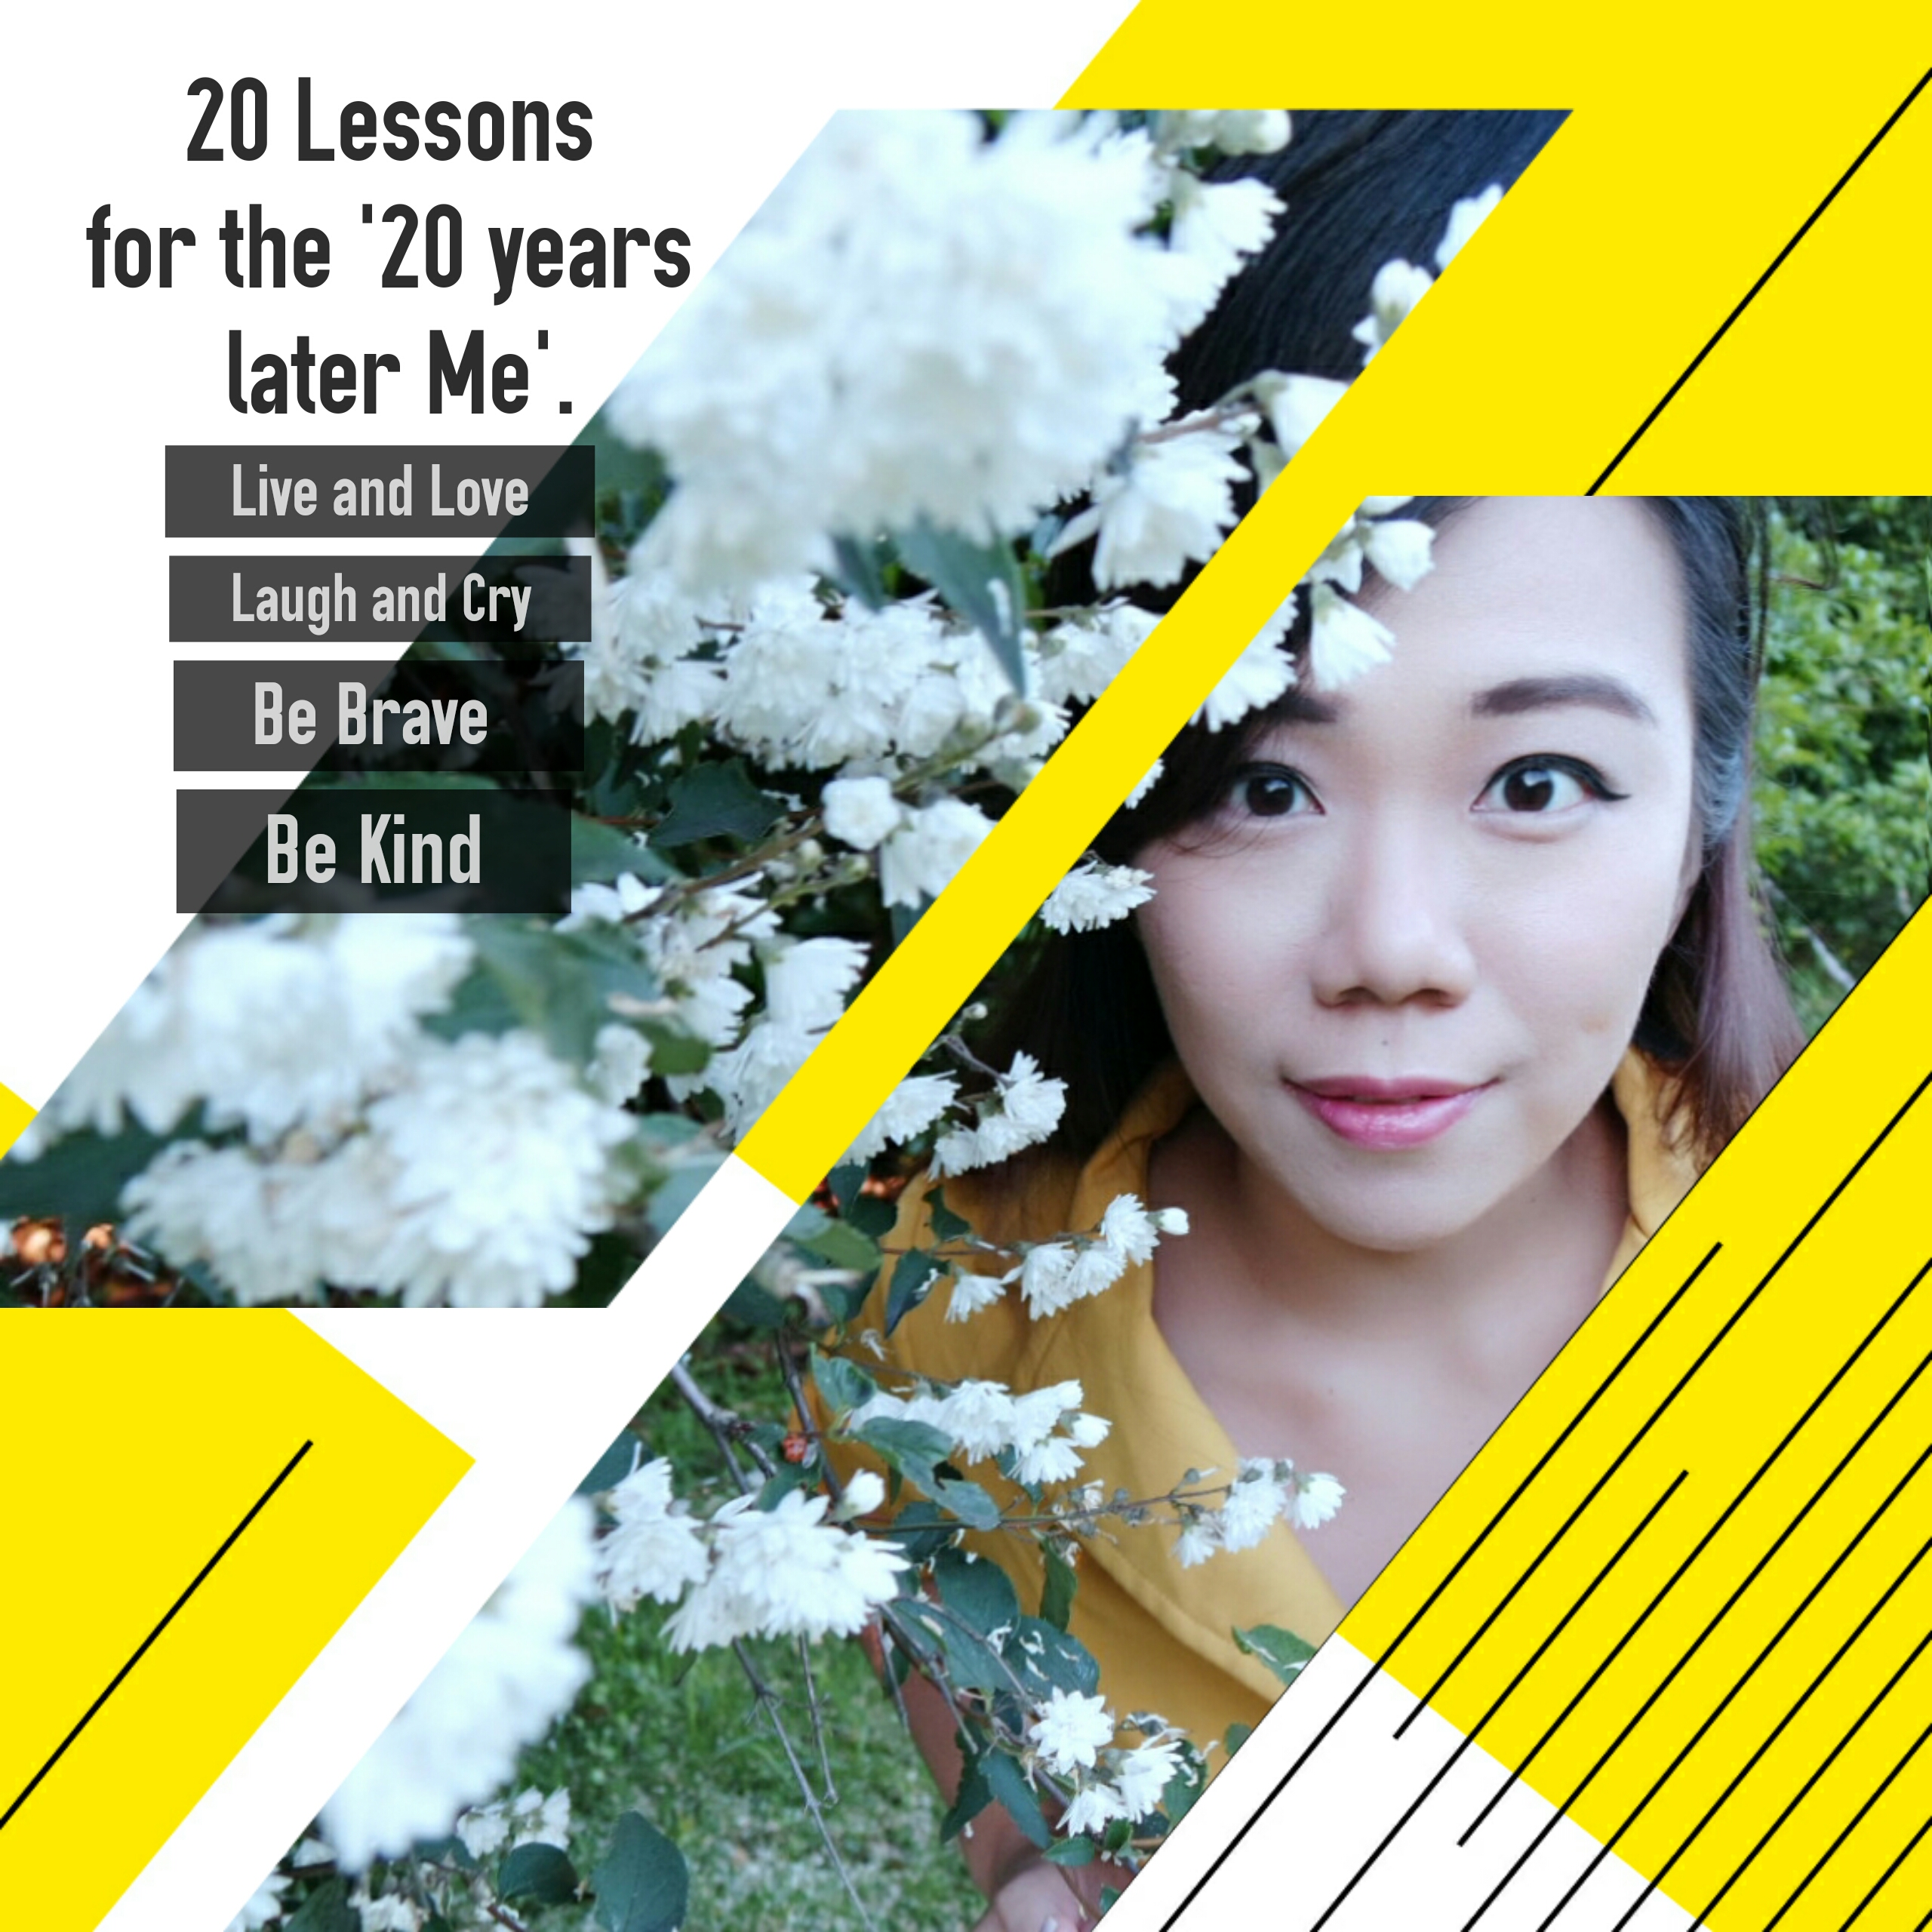 20 lessons for the future me